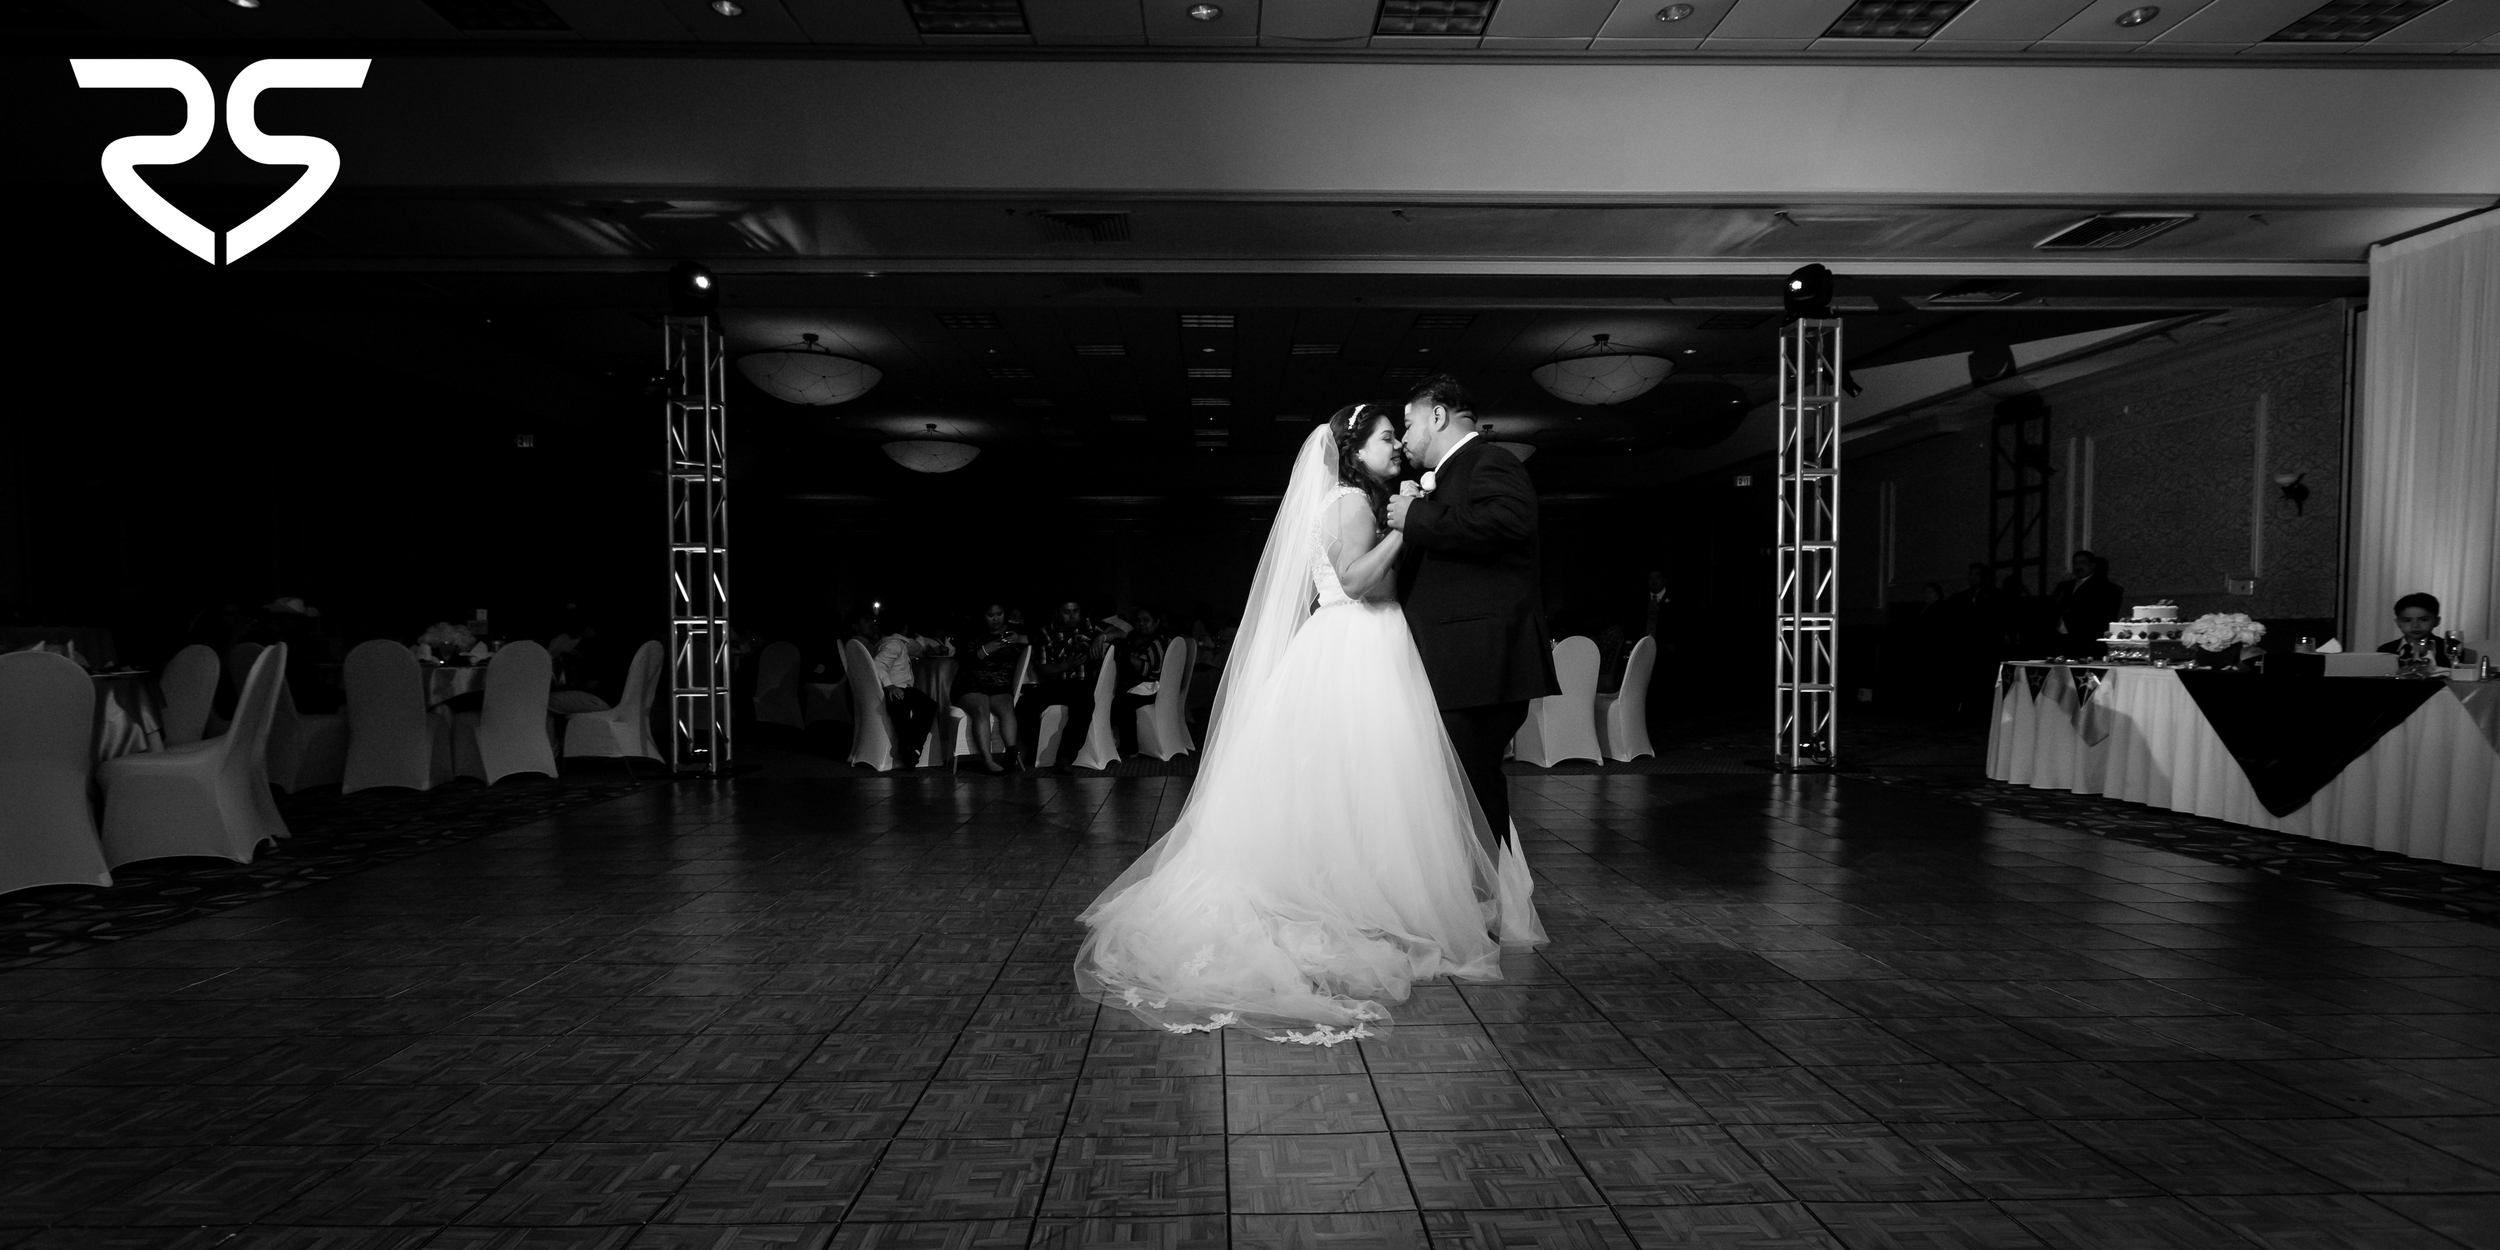 DalllasWeddingPhotographer037.jpg